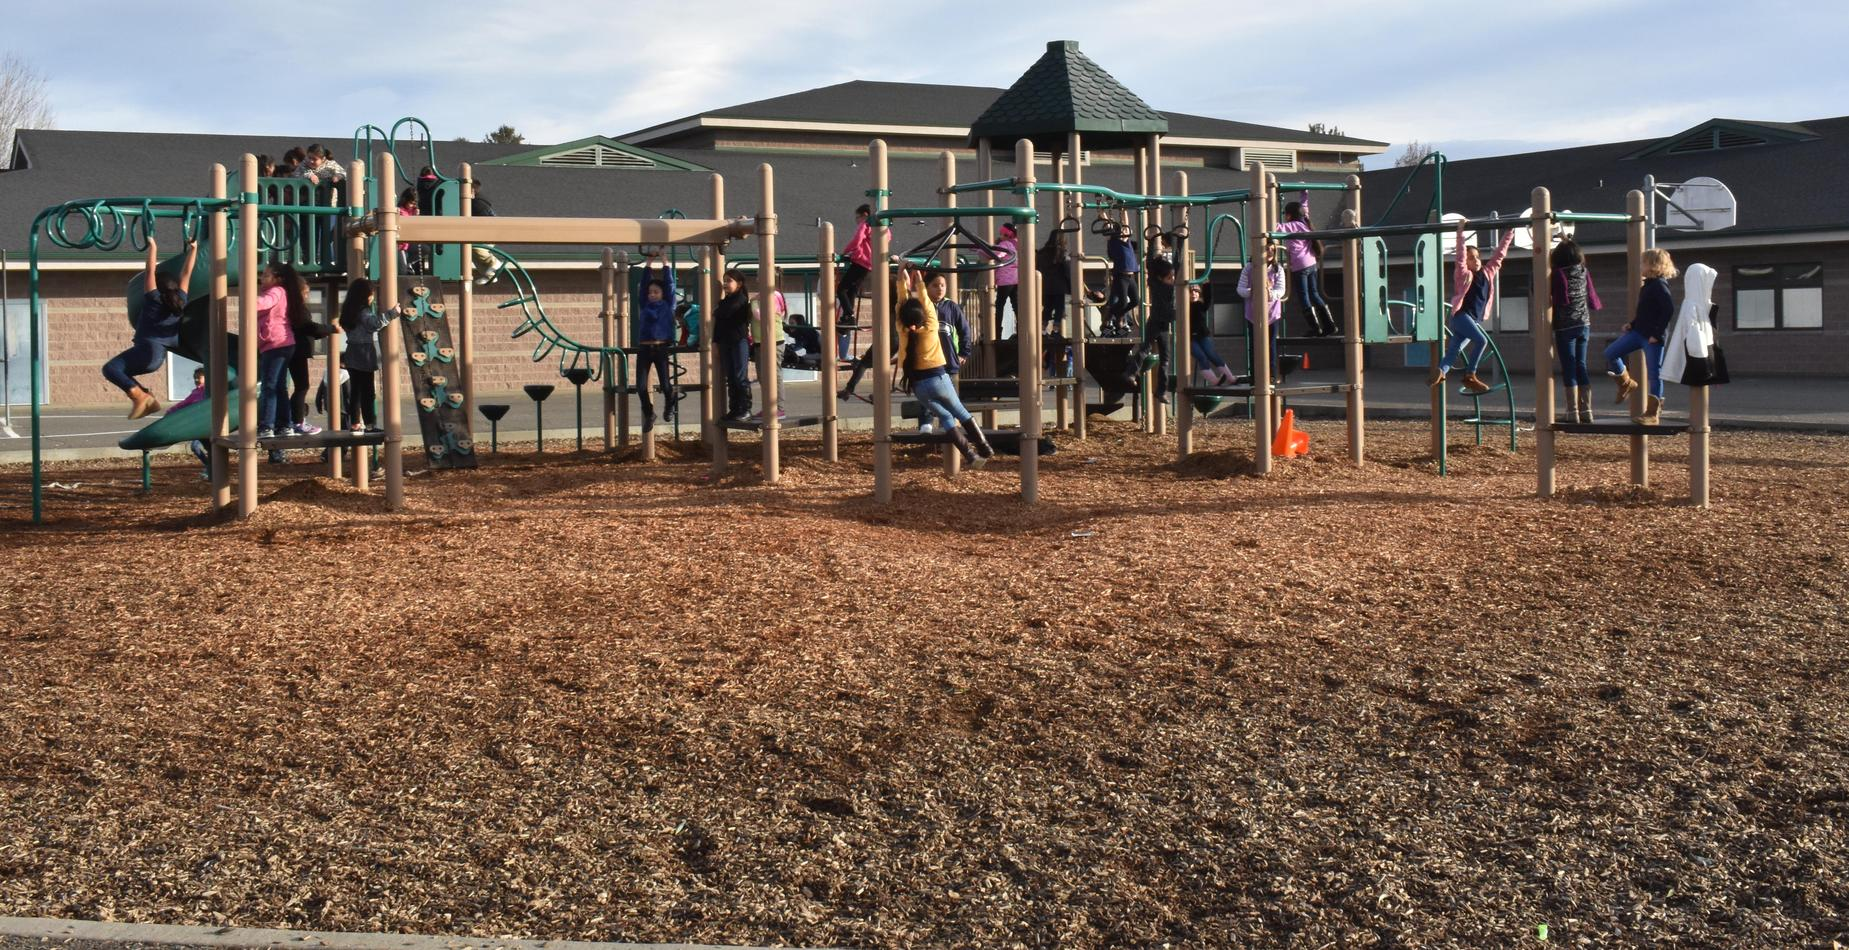 Kids on the playground playing!